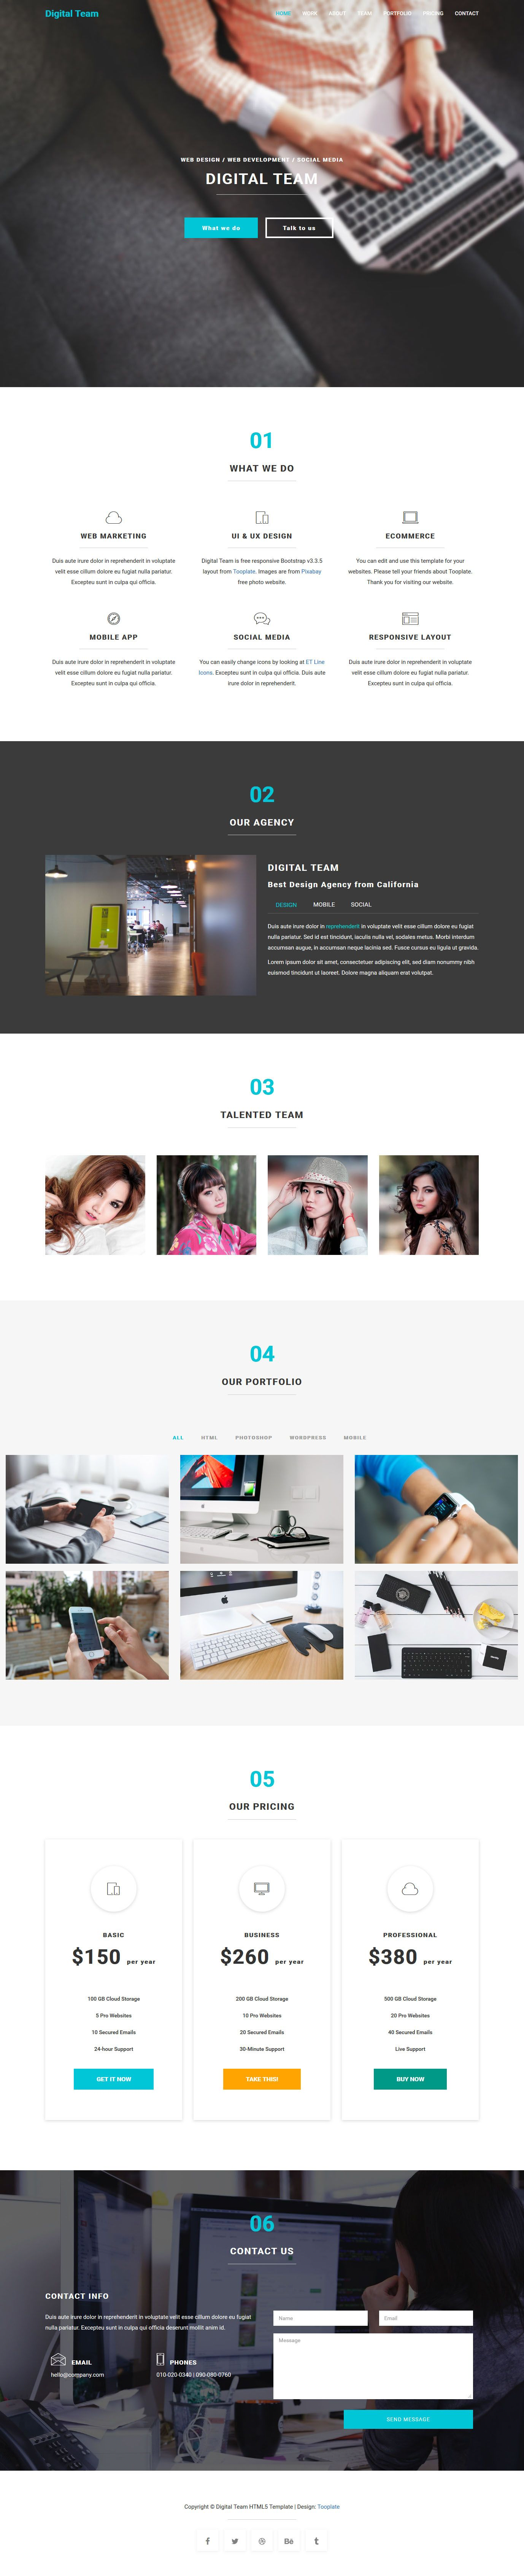 Digital Team HTML5 is responsive Boostrap v3.3.5 layout. This ...